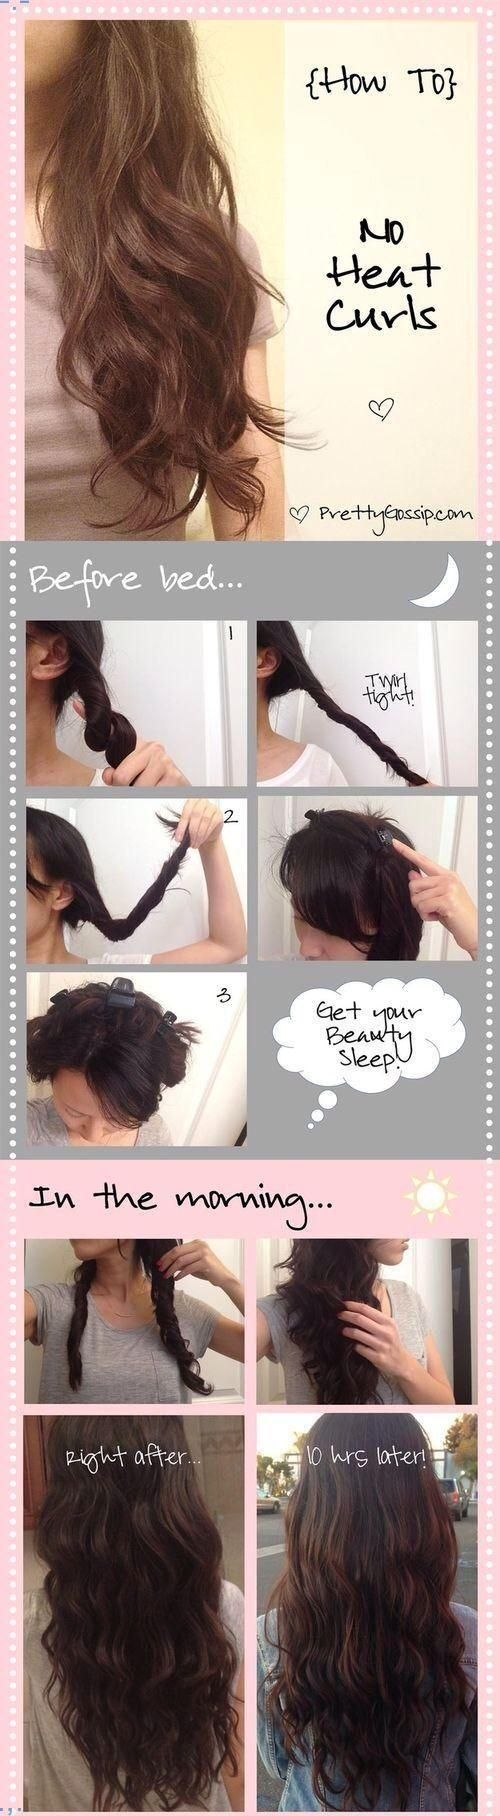 How to curl your hair without the heat. heritagebe..